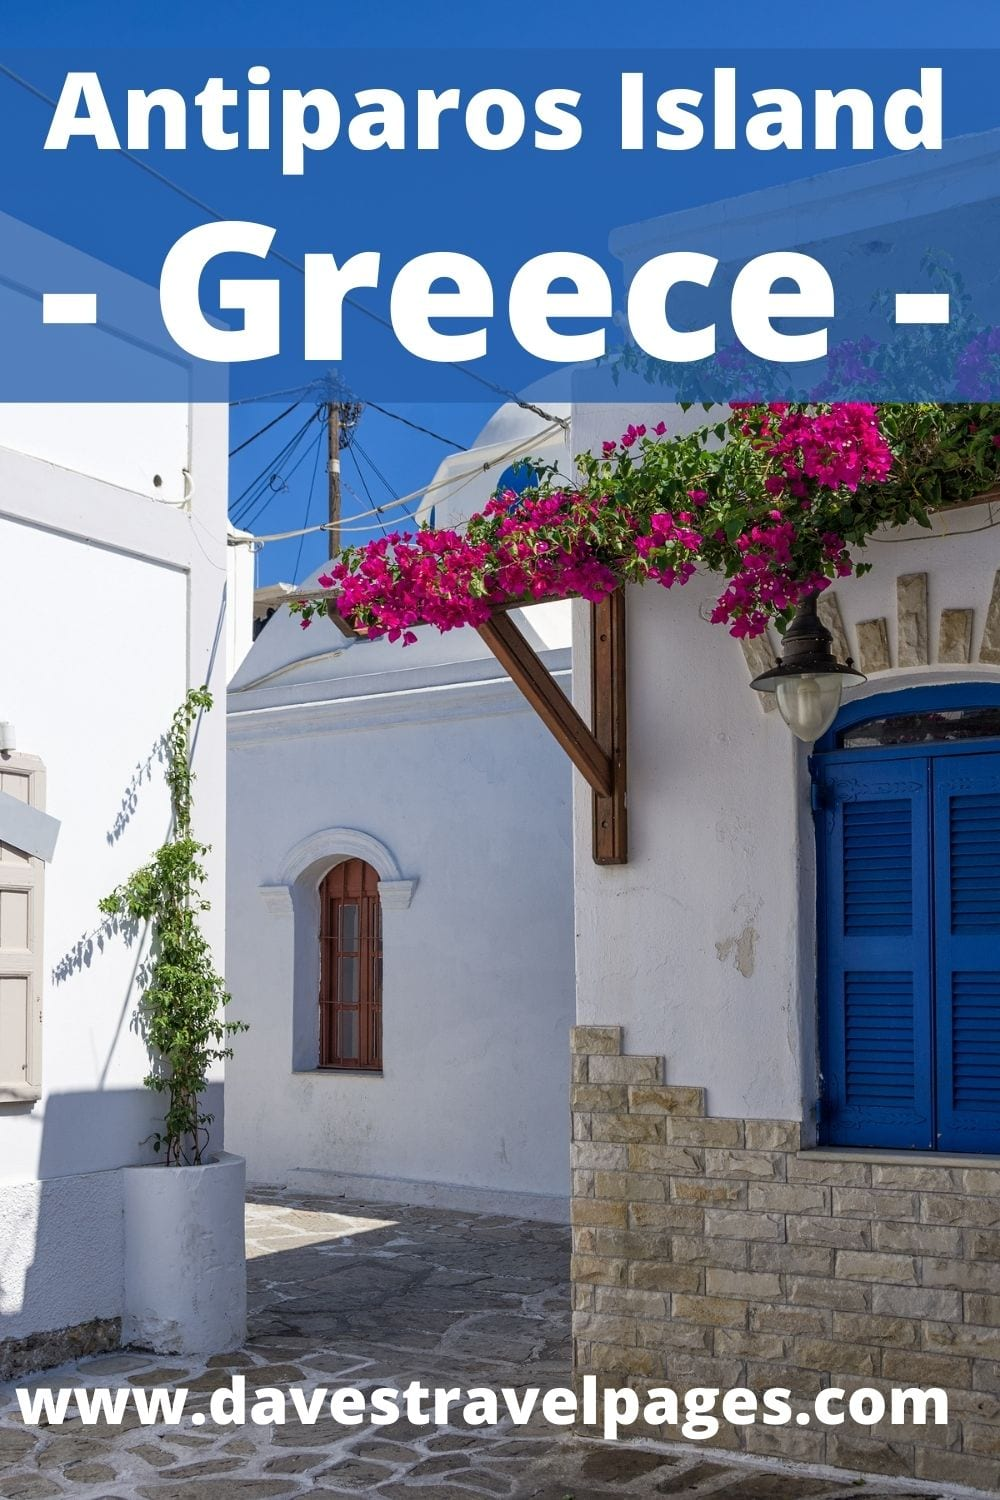 How to get from Athens to Antiparos island in Greece